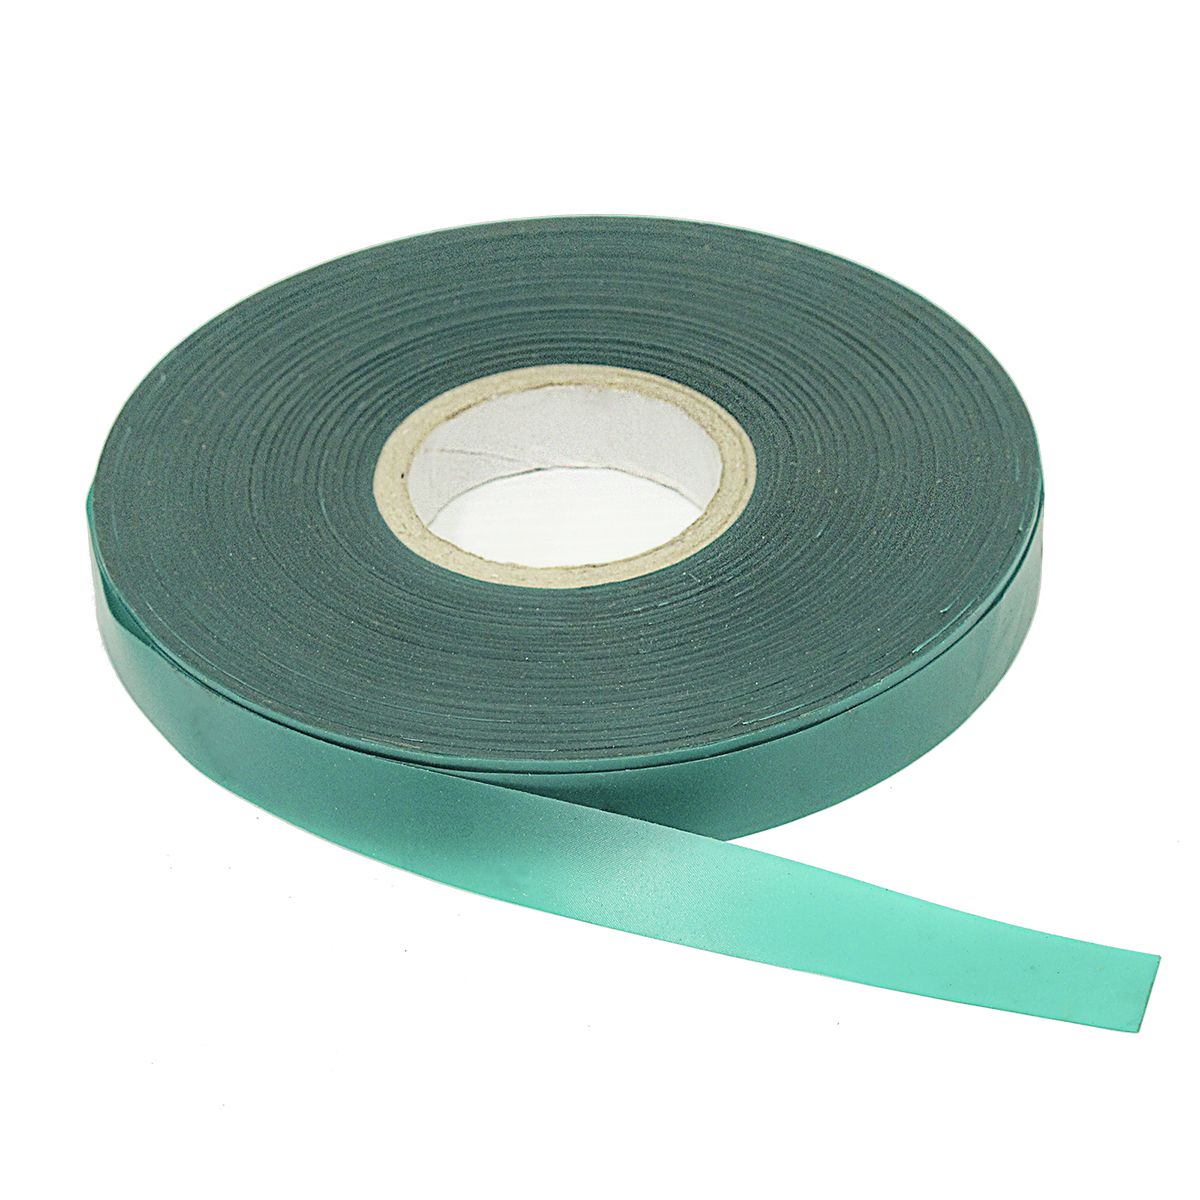 18742 - Plant Stretch Tape 43m